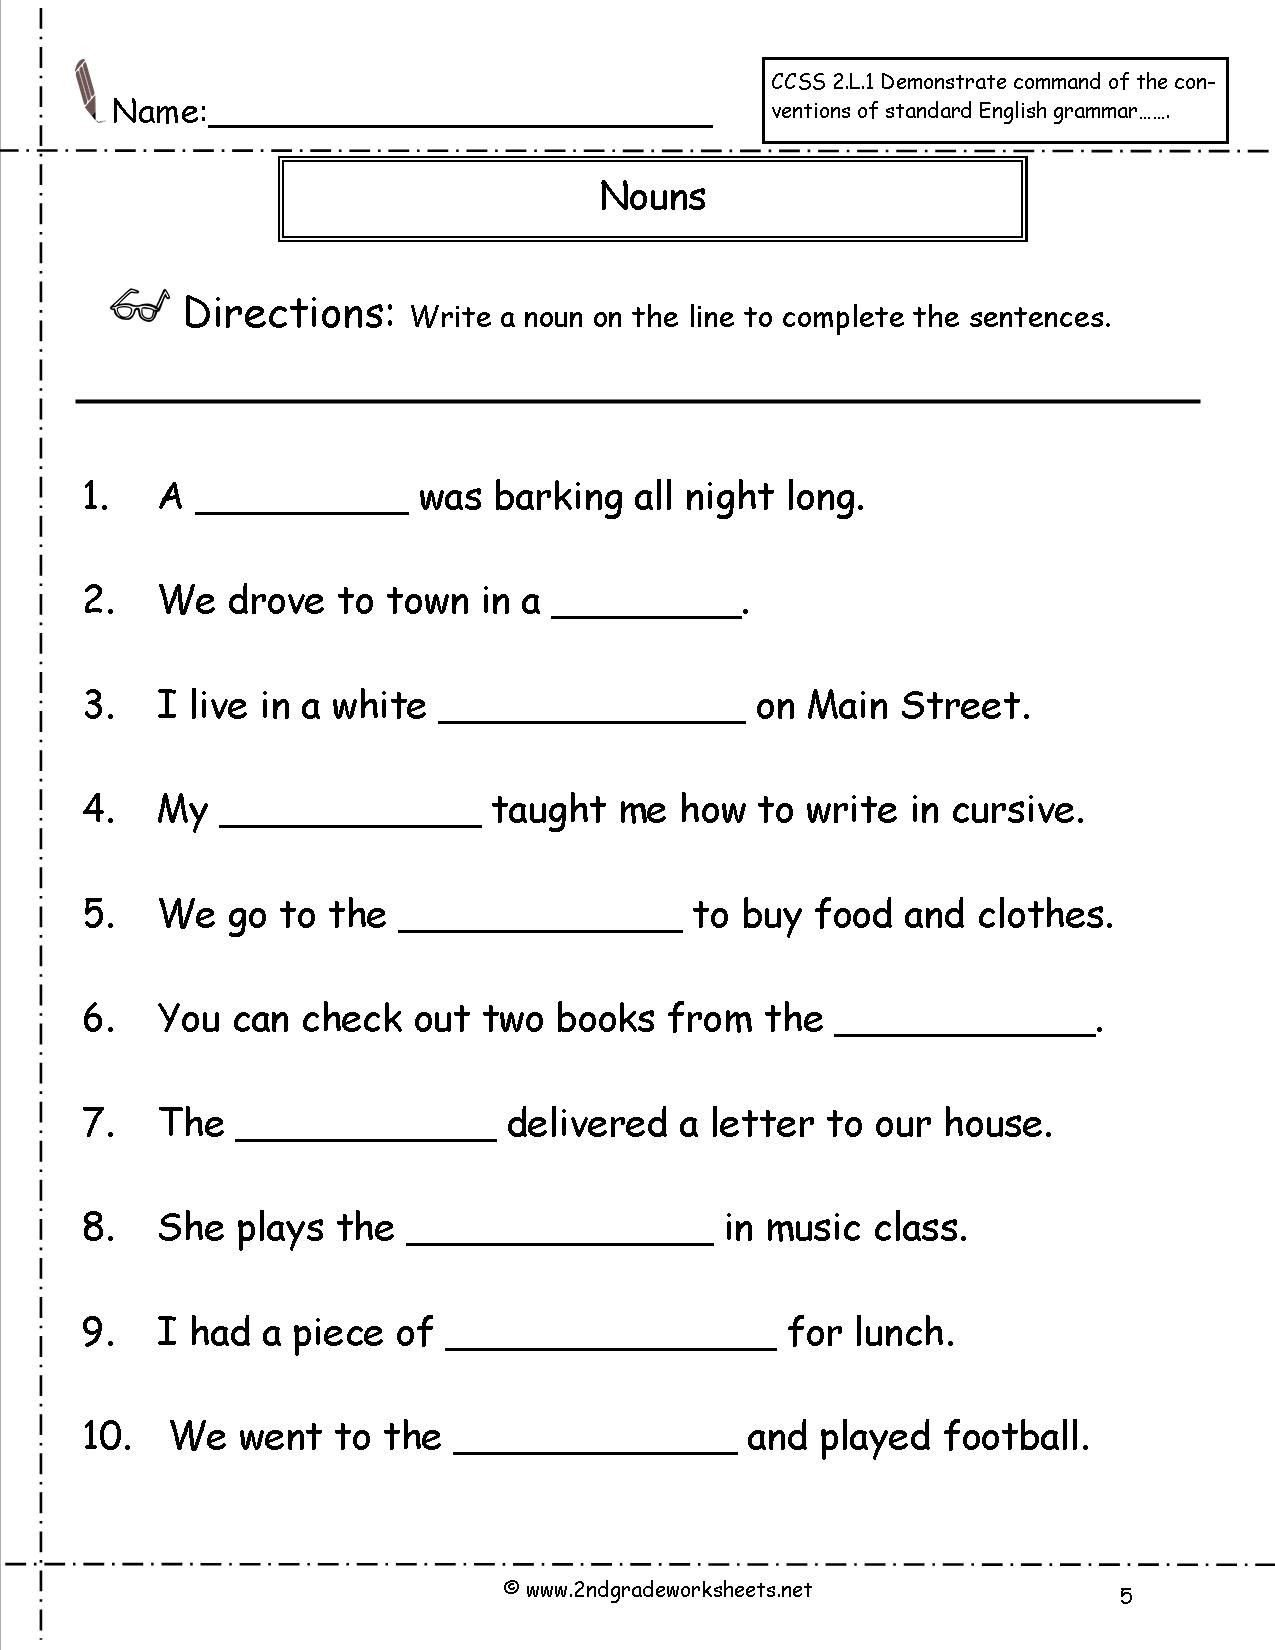 Homophones Worksheets for Grade 2 Homonyms Worksheets 12t Grade